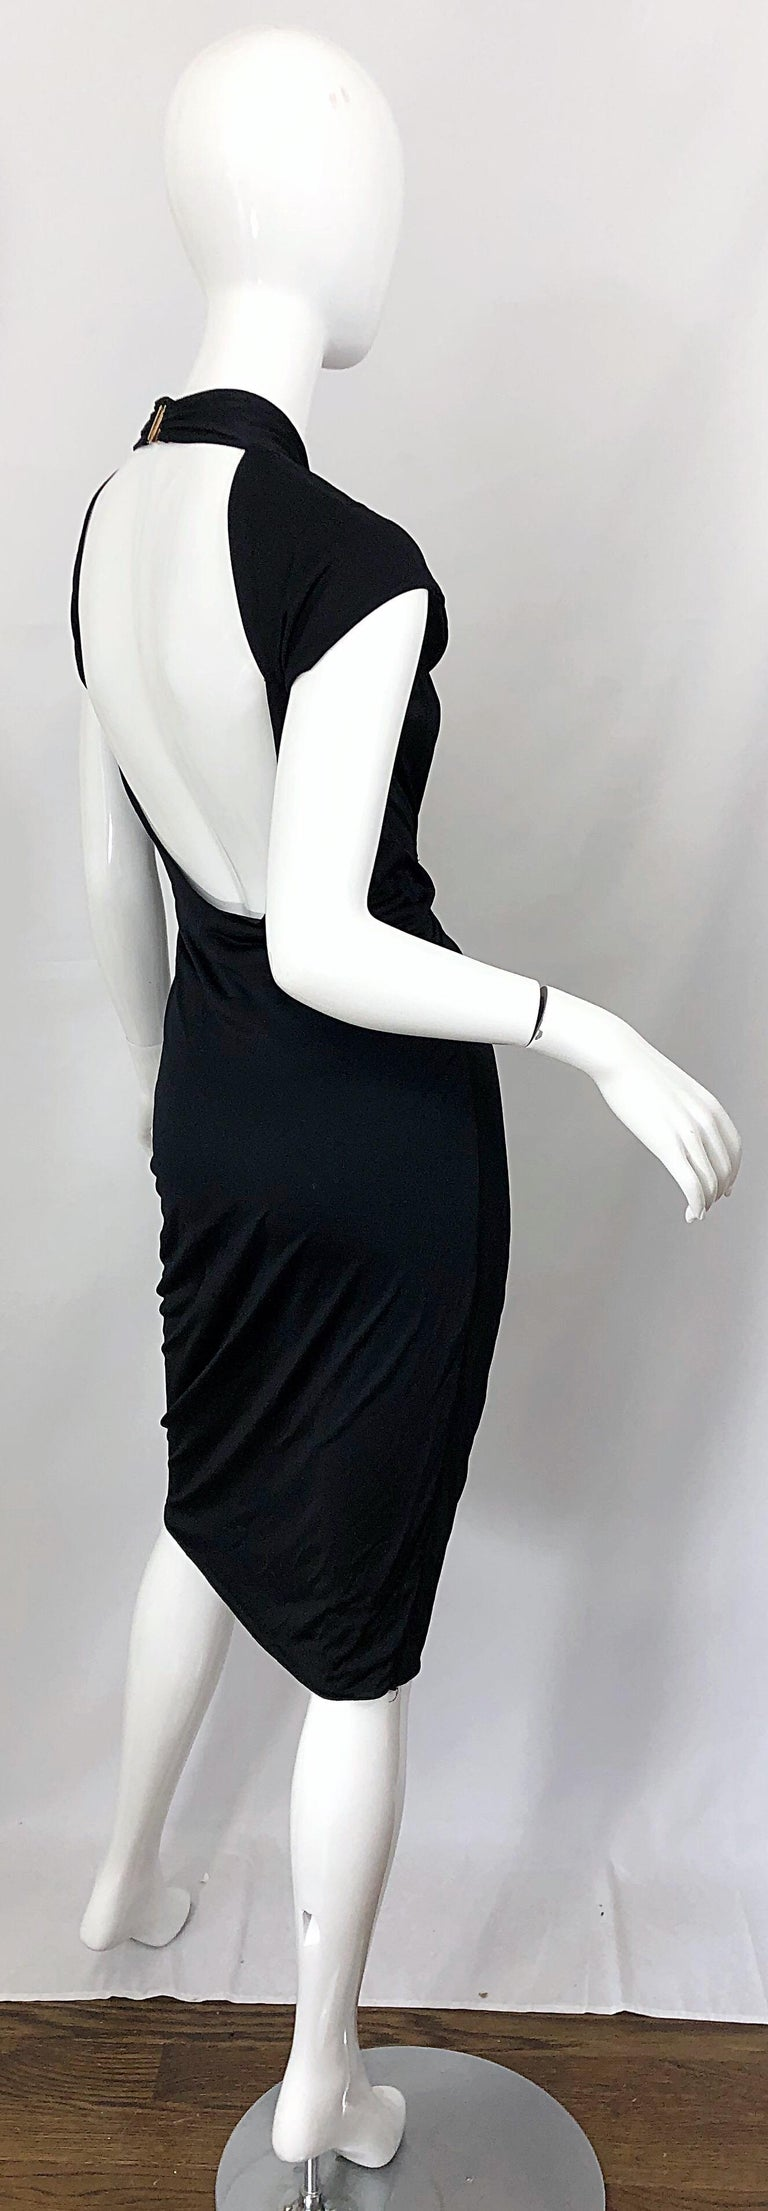 Gucci Tom Ford Fall 2003 Runway Black Cut Out Backless Stretch Jersey Dress  For Sale 11